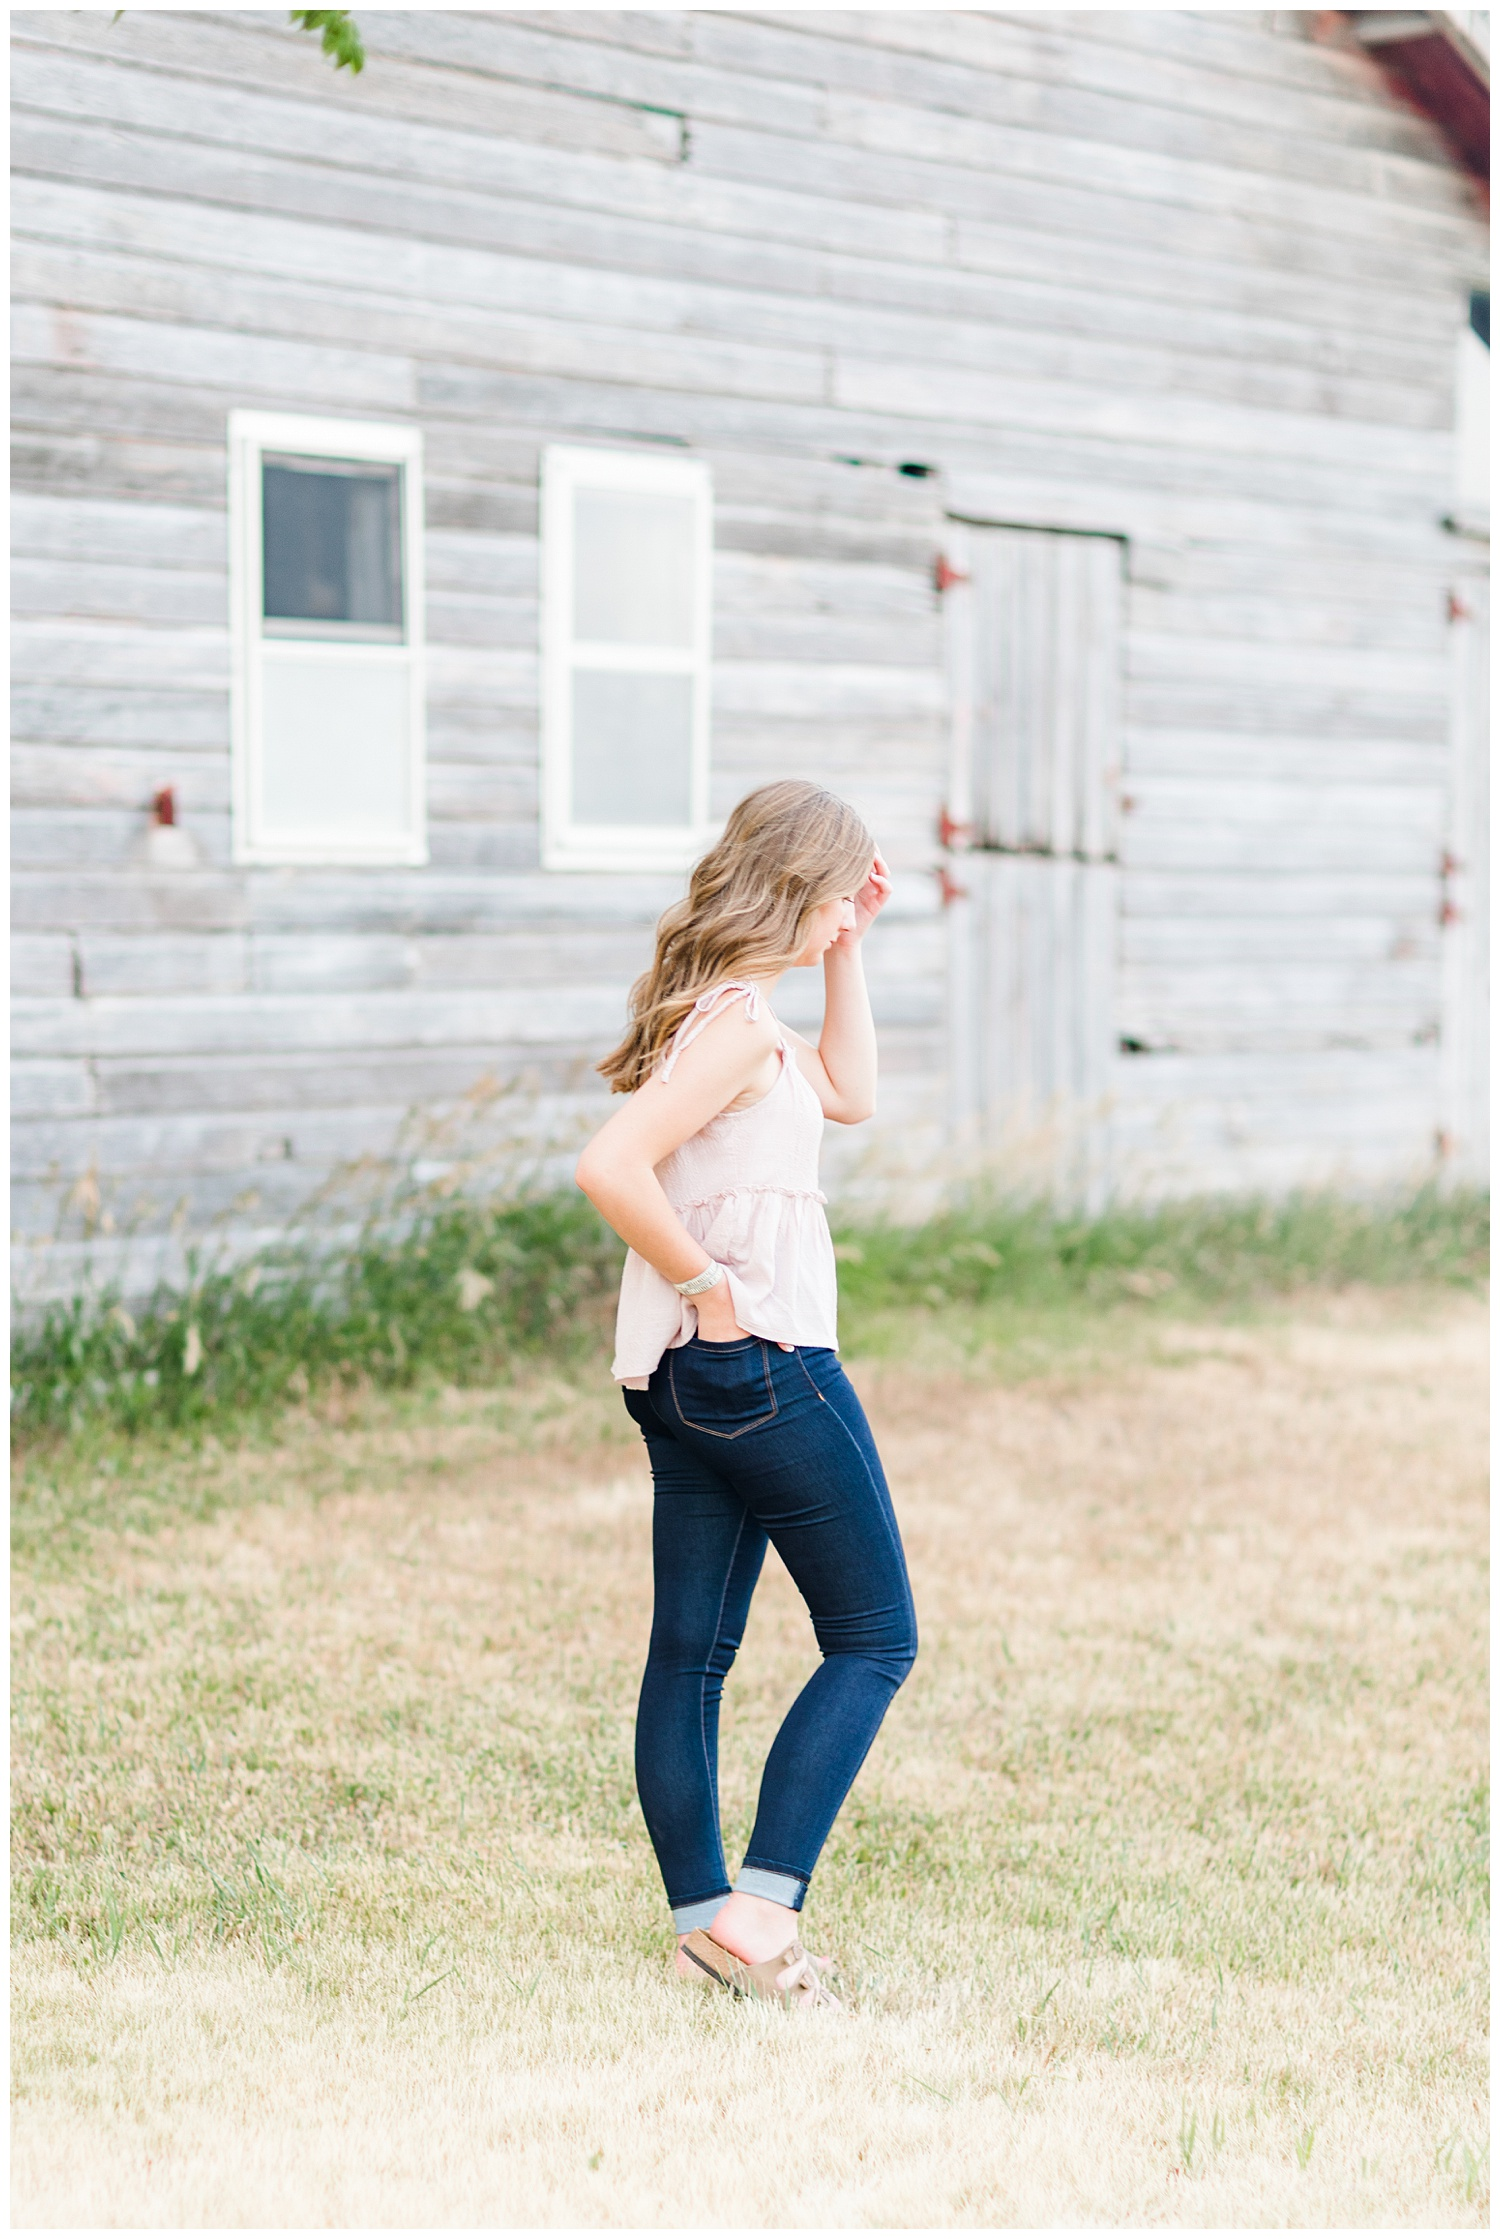 Senior Taylor brushes her hair aside as the wind blows with an old wooden barn in the background | CB Studio